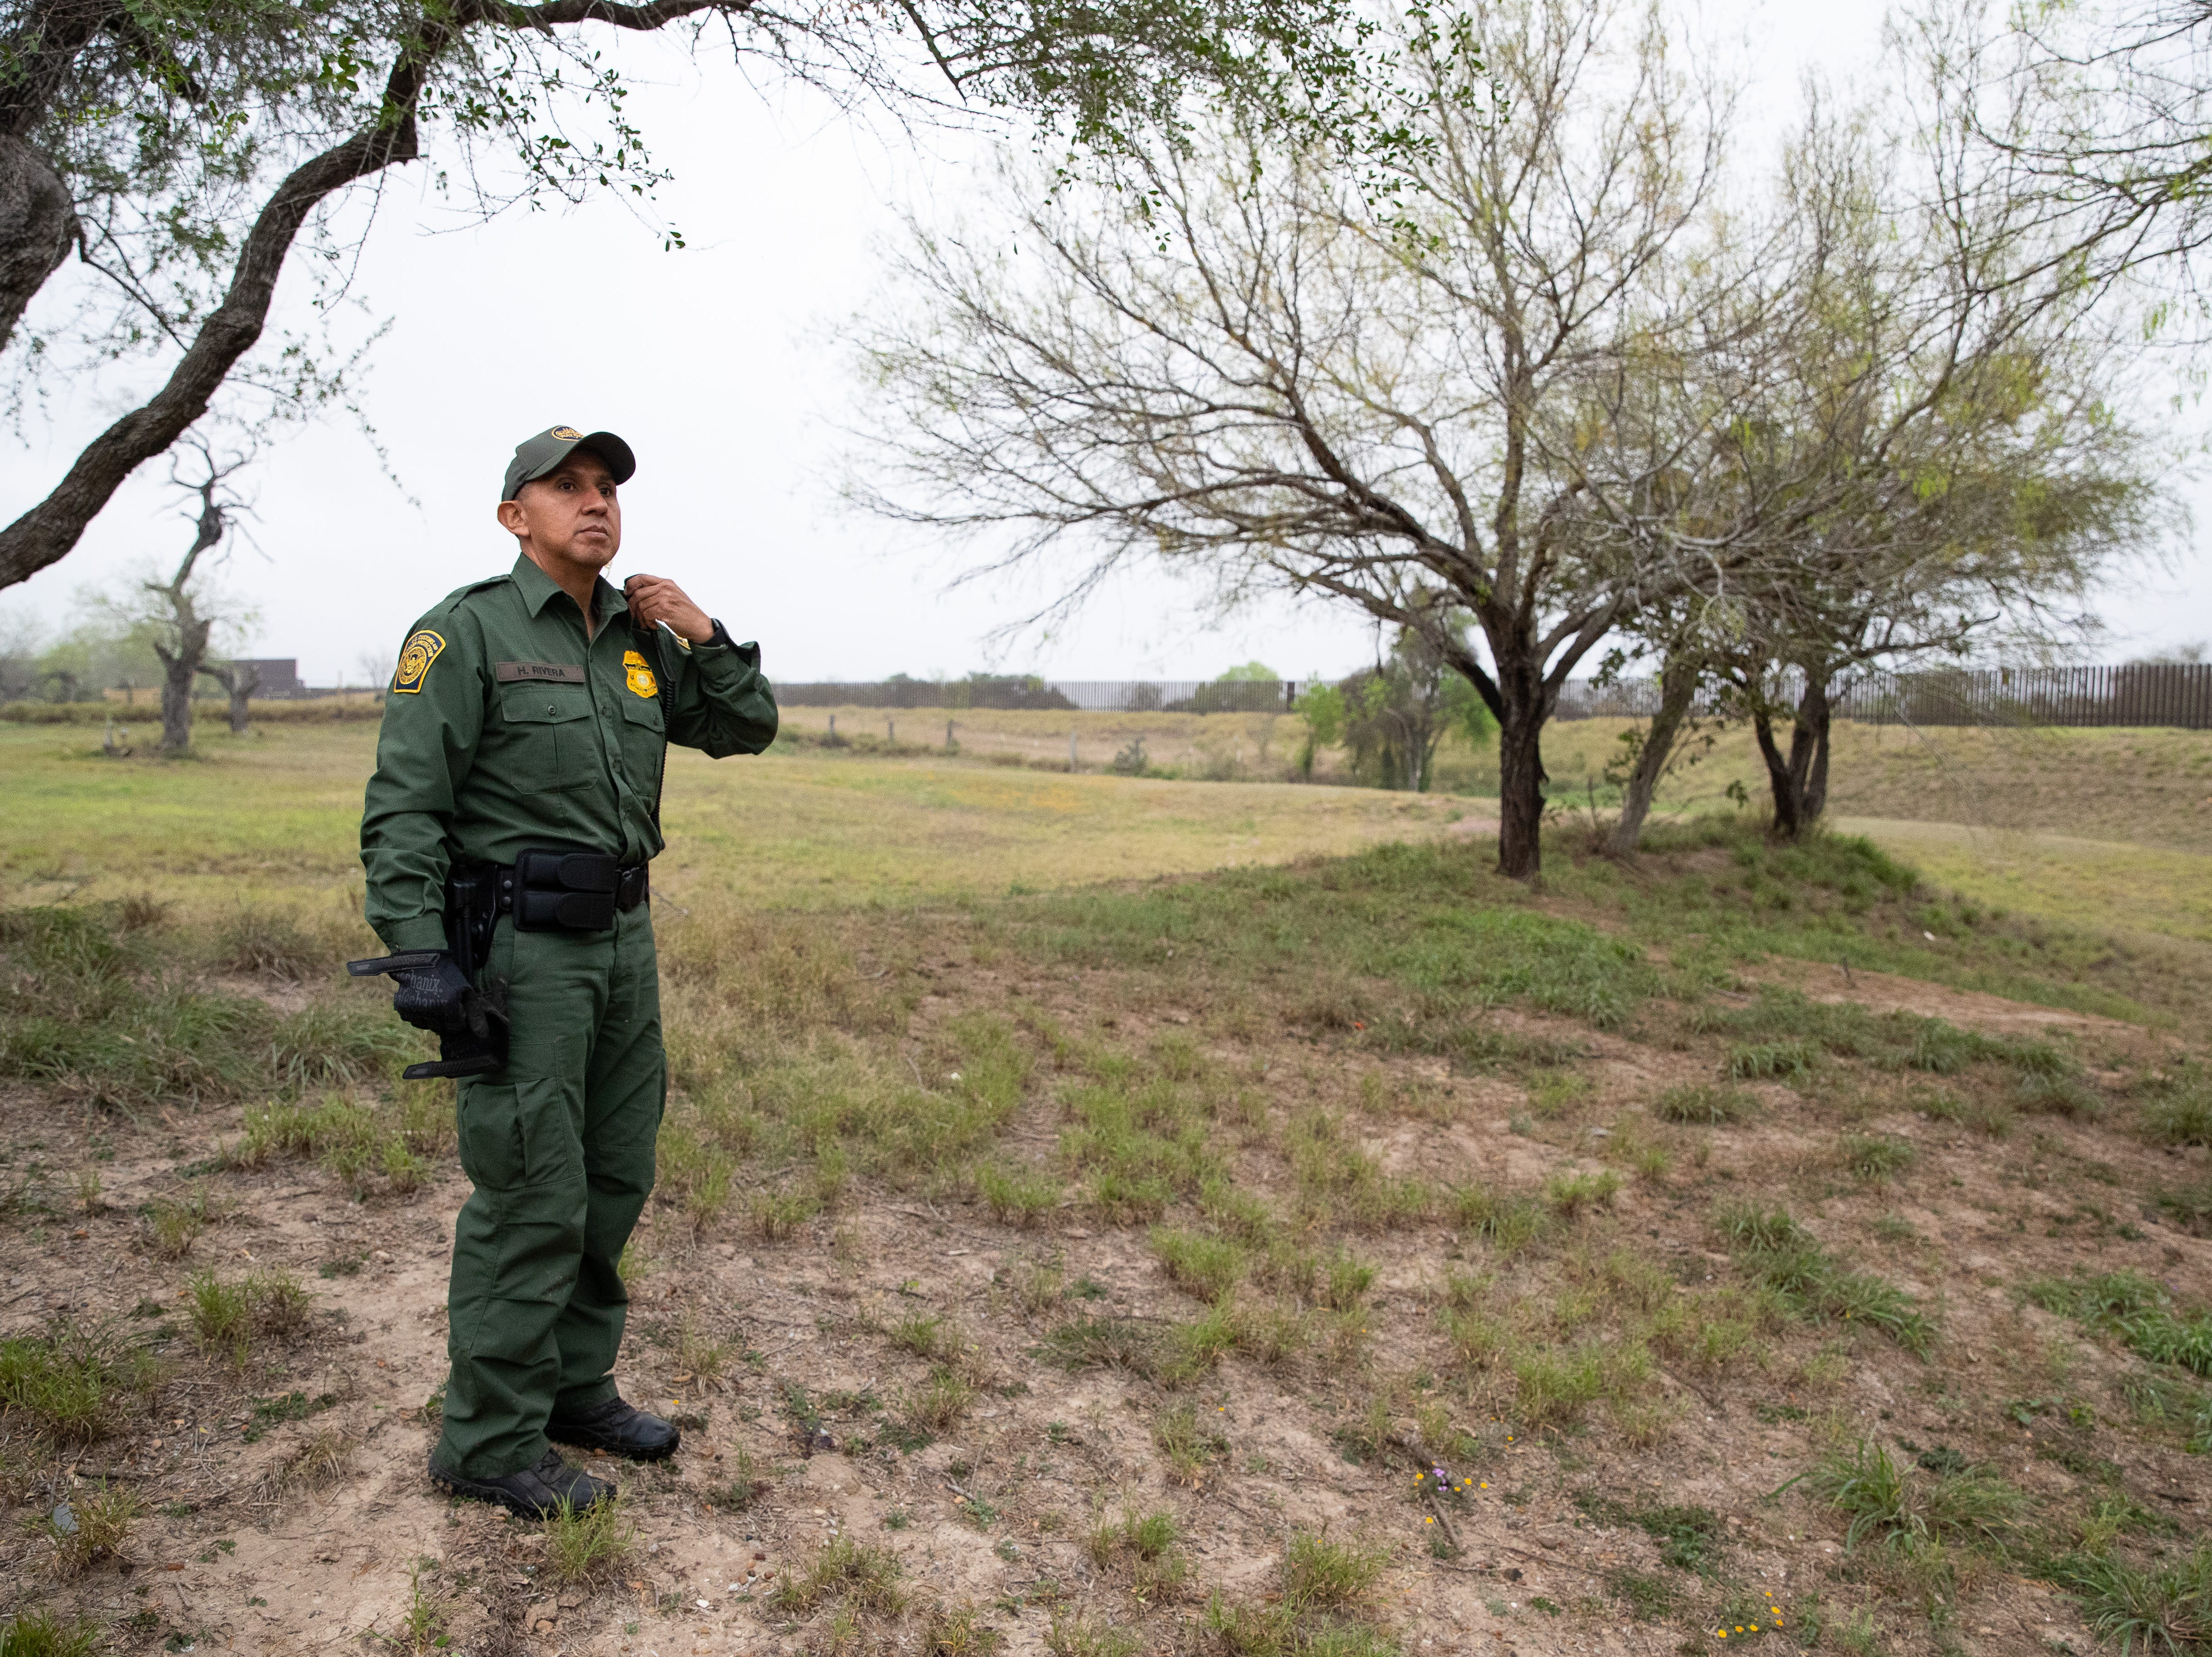 Border Patrol Agent Hermann Rivera radios to other agents as they search an area in Penitas, Texas, after a camera spotted two migrants walking in the area on Tuesday, Feb. 26, 2019.